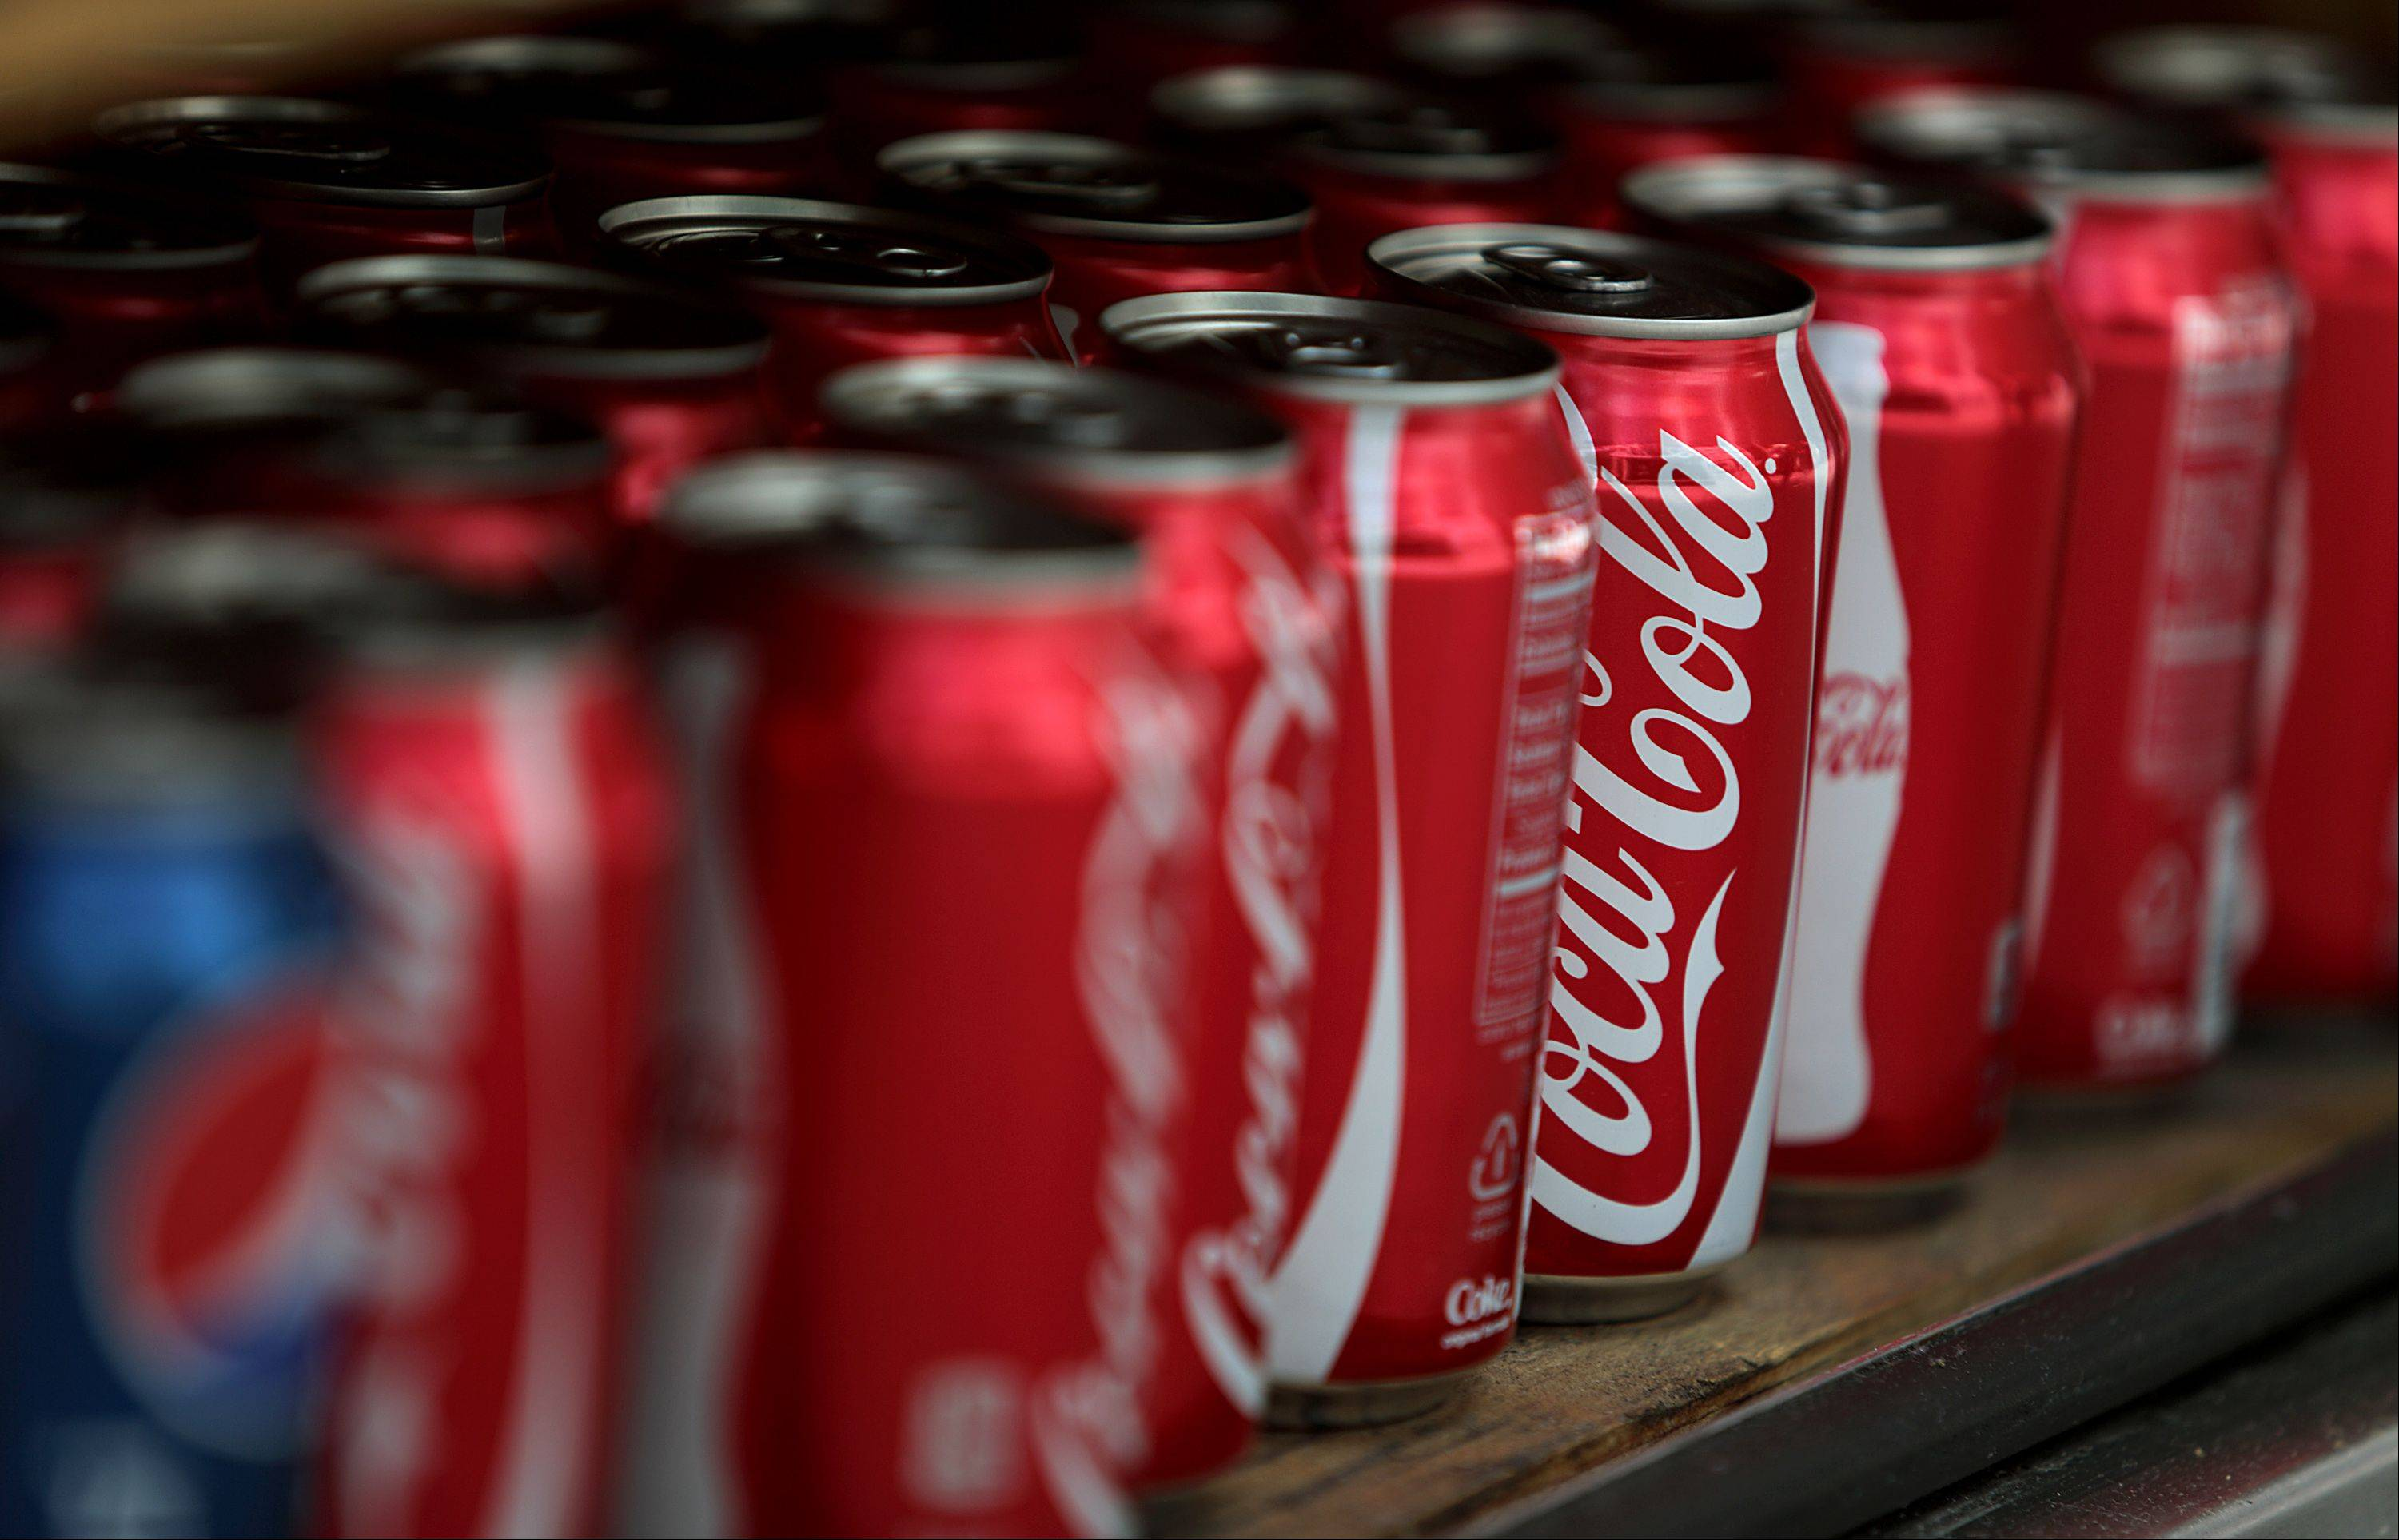 Coca-Cola Co. products are displayed for sale in New York, U.S., on Monday, July 16, 2012. Coca-Cola Co., the world�s largest soft-drink maker, reported second-quarter profit that topped analysts� estimates, helped by pricing increases in North America late last year.